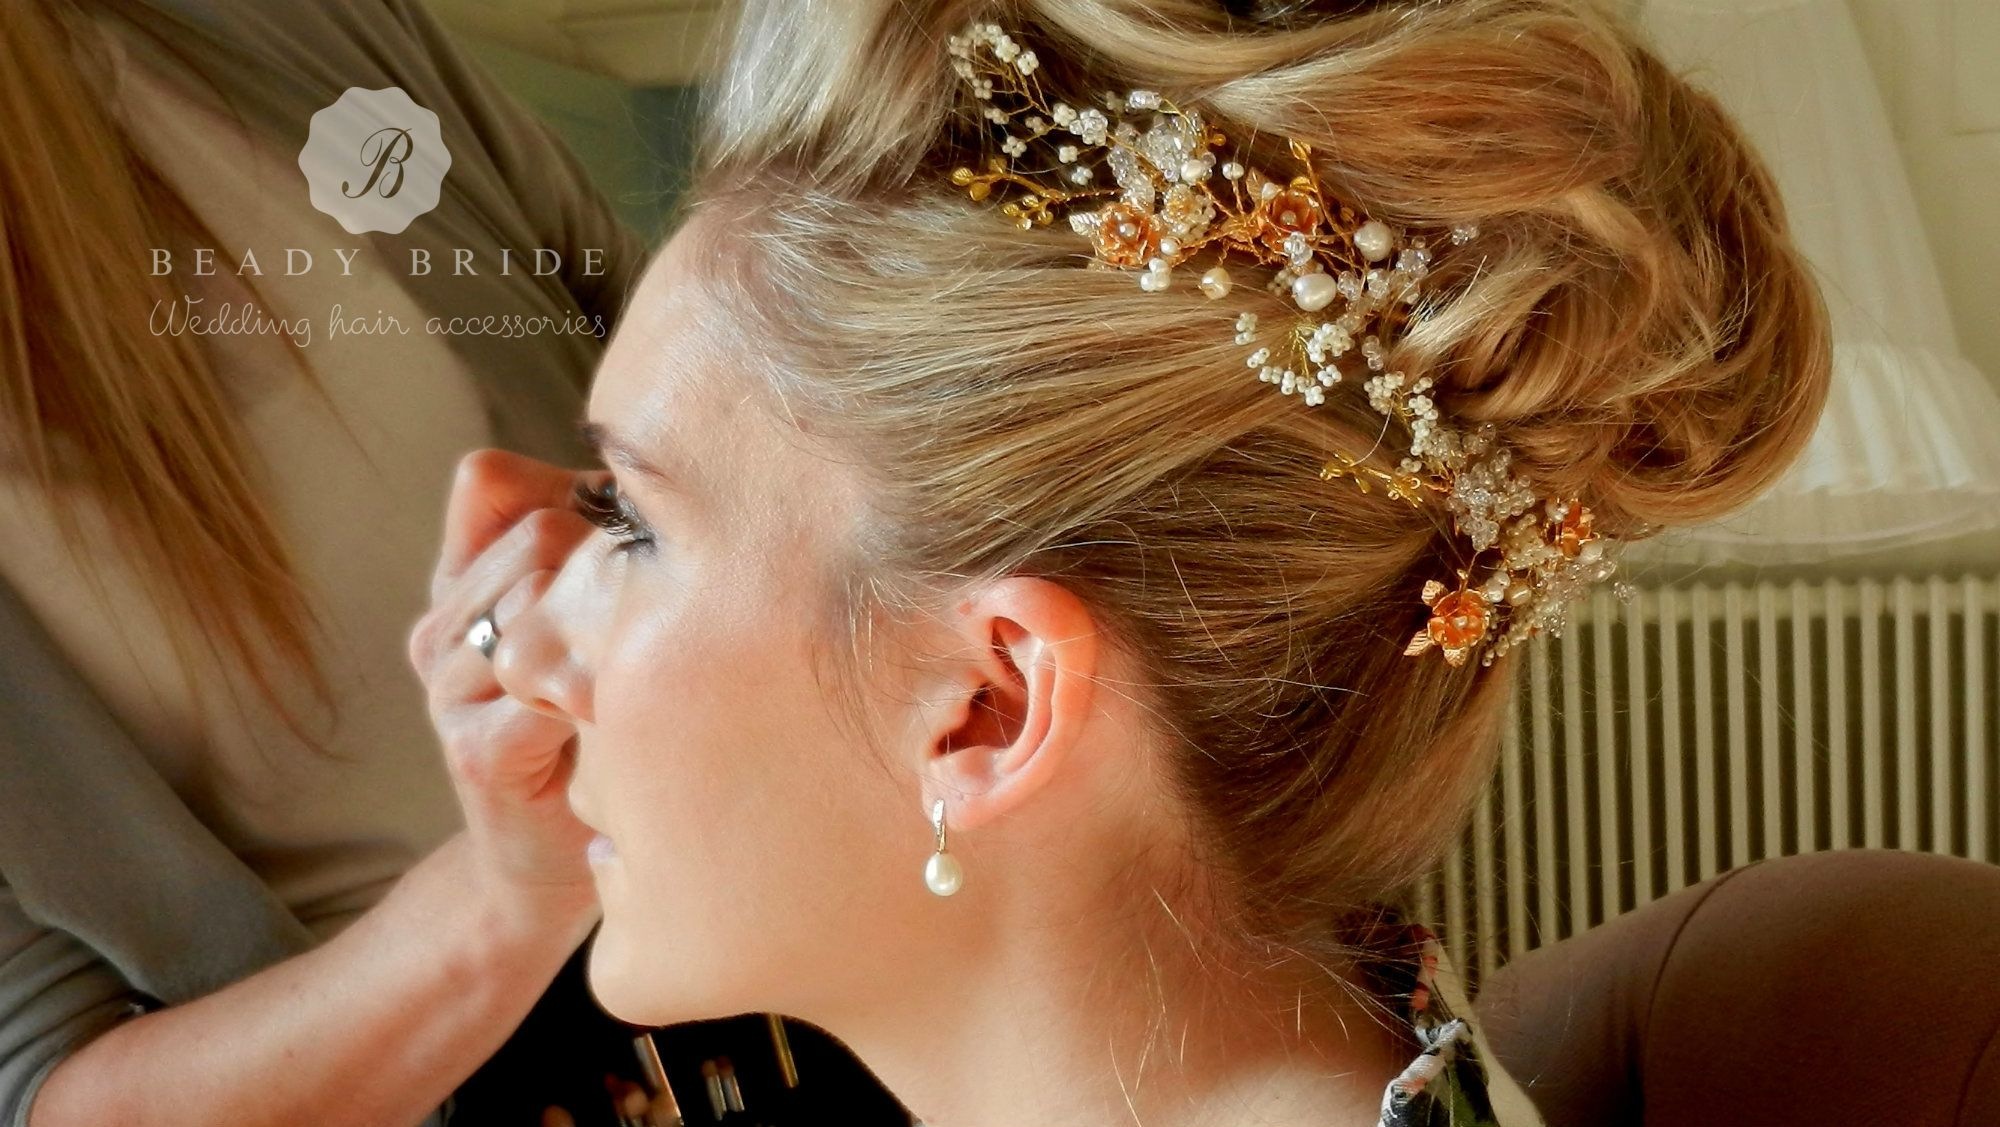 Wedding hair accessories gloucestershire - Designing And Hand Crafting These Beautiful Hair Accessories Is An Additional Service Especially For Brides And Bridesmaids At Sheena S Wedding Hairstyles